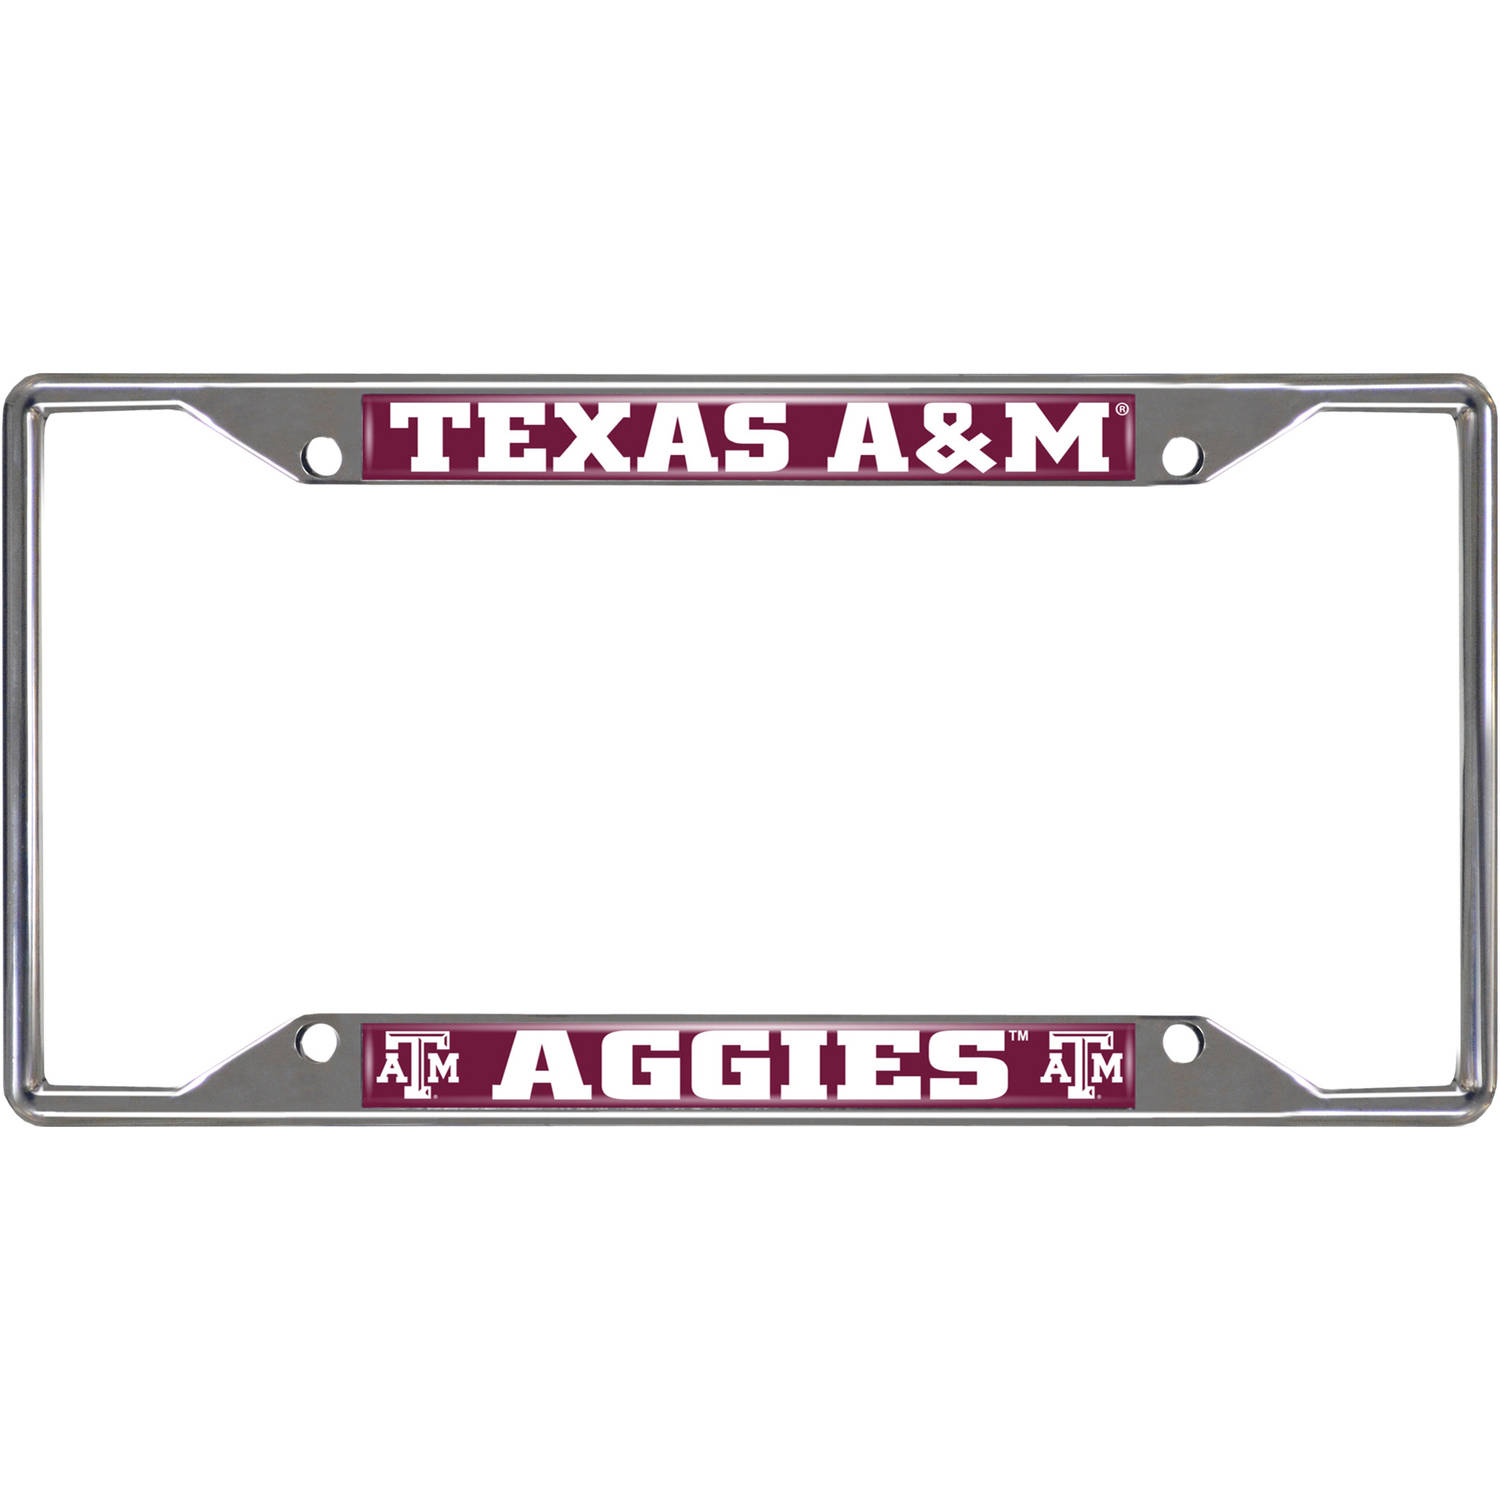 Texas A&M University License Plate Frame